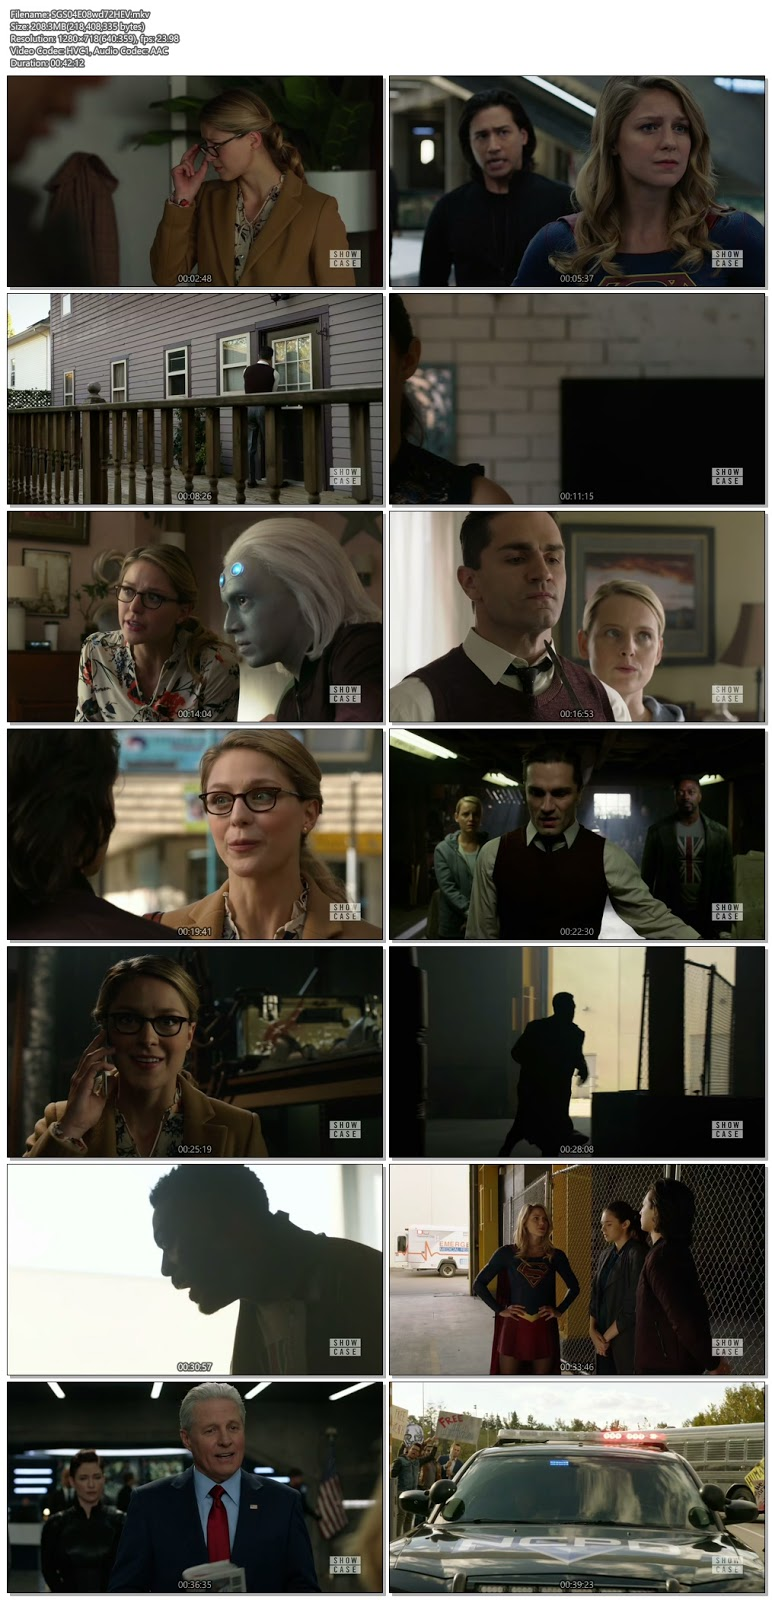 Supergirl S04 Episode 08 720p HDTV 200MB ESub x265 HEVC , hollwood tv series Supergirl S01 Episode 08 720p hdtv tv show hevc x265 hdrip 250mb 270mb free download or watch online at world4ufree.vip